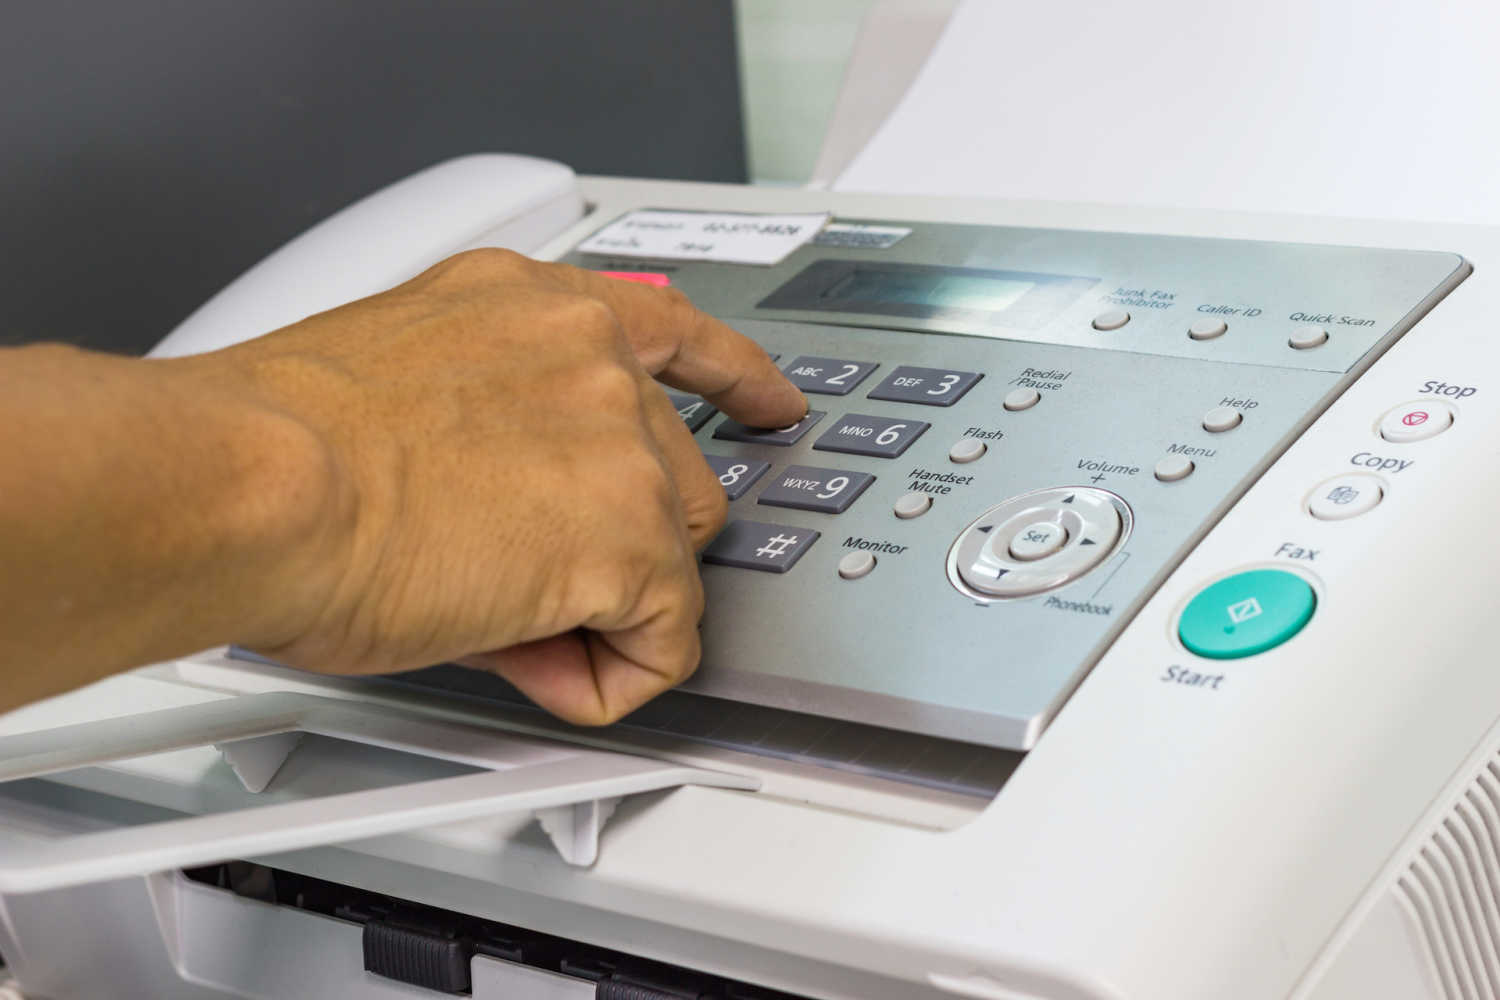 If We Don't Pull the Plug on the Fax Machine Soon, Our Patients Will Pay  the Price